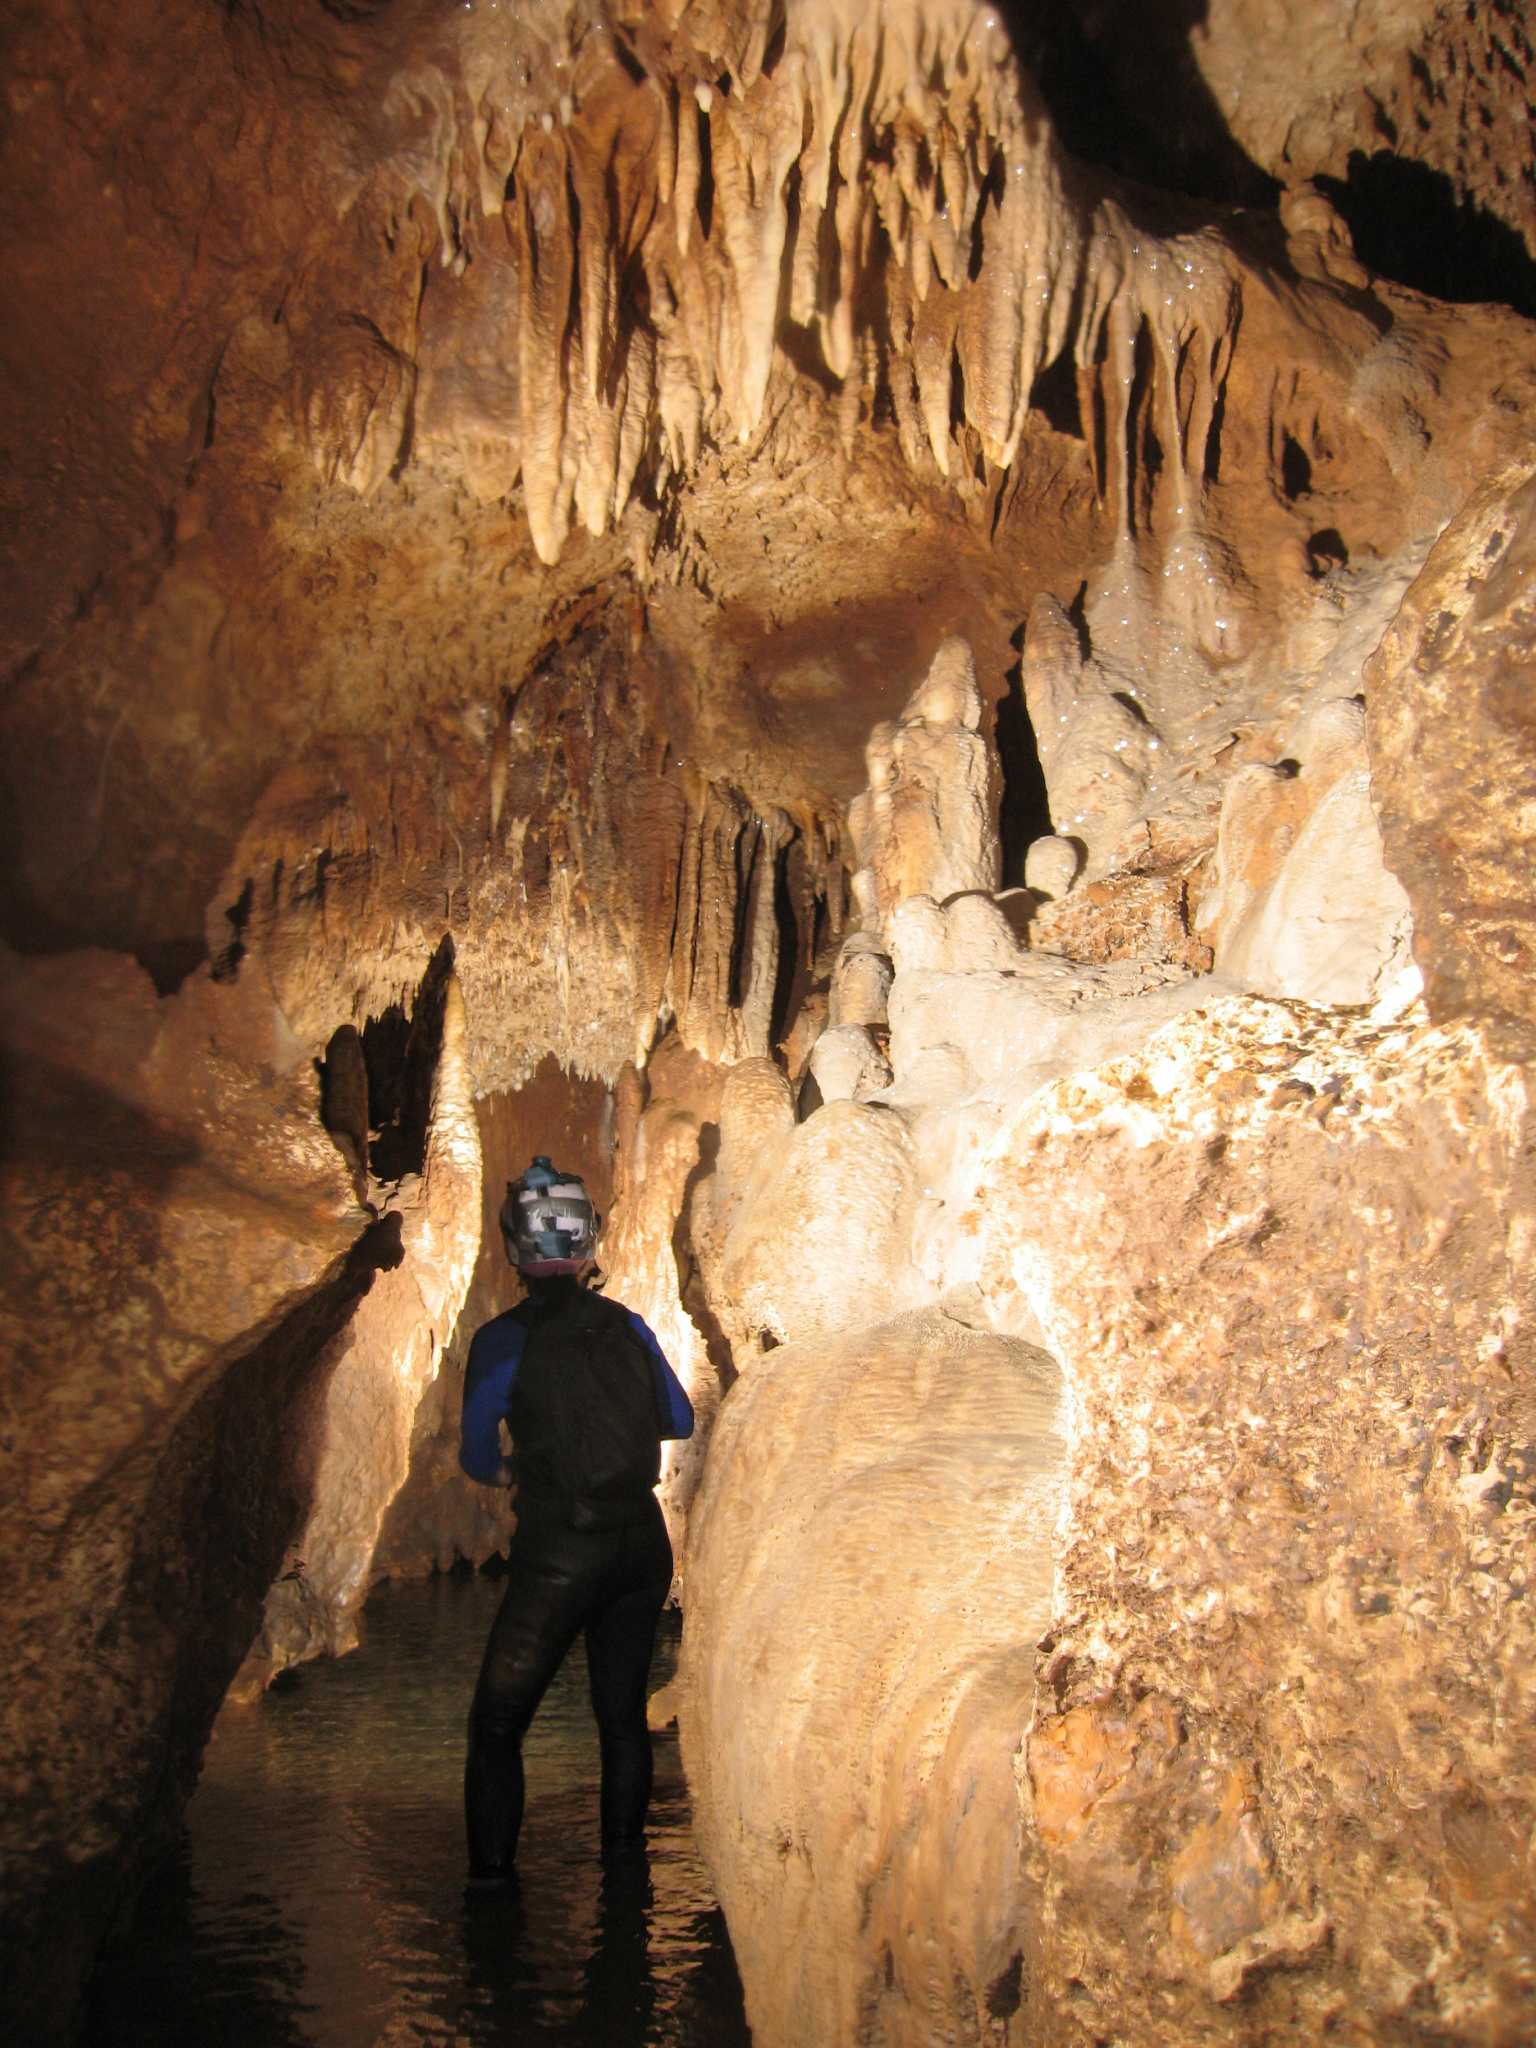 Go Inside Honey Creek Cave The Longest Known Cave In